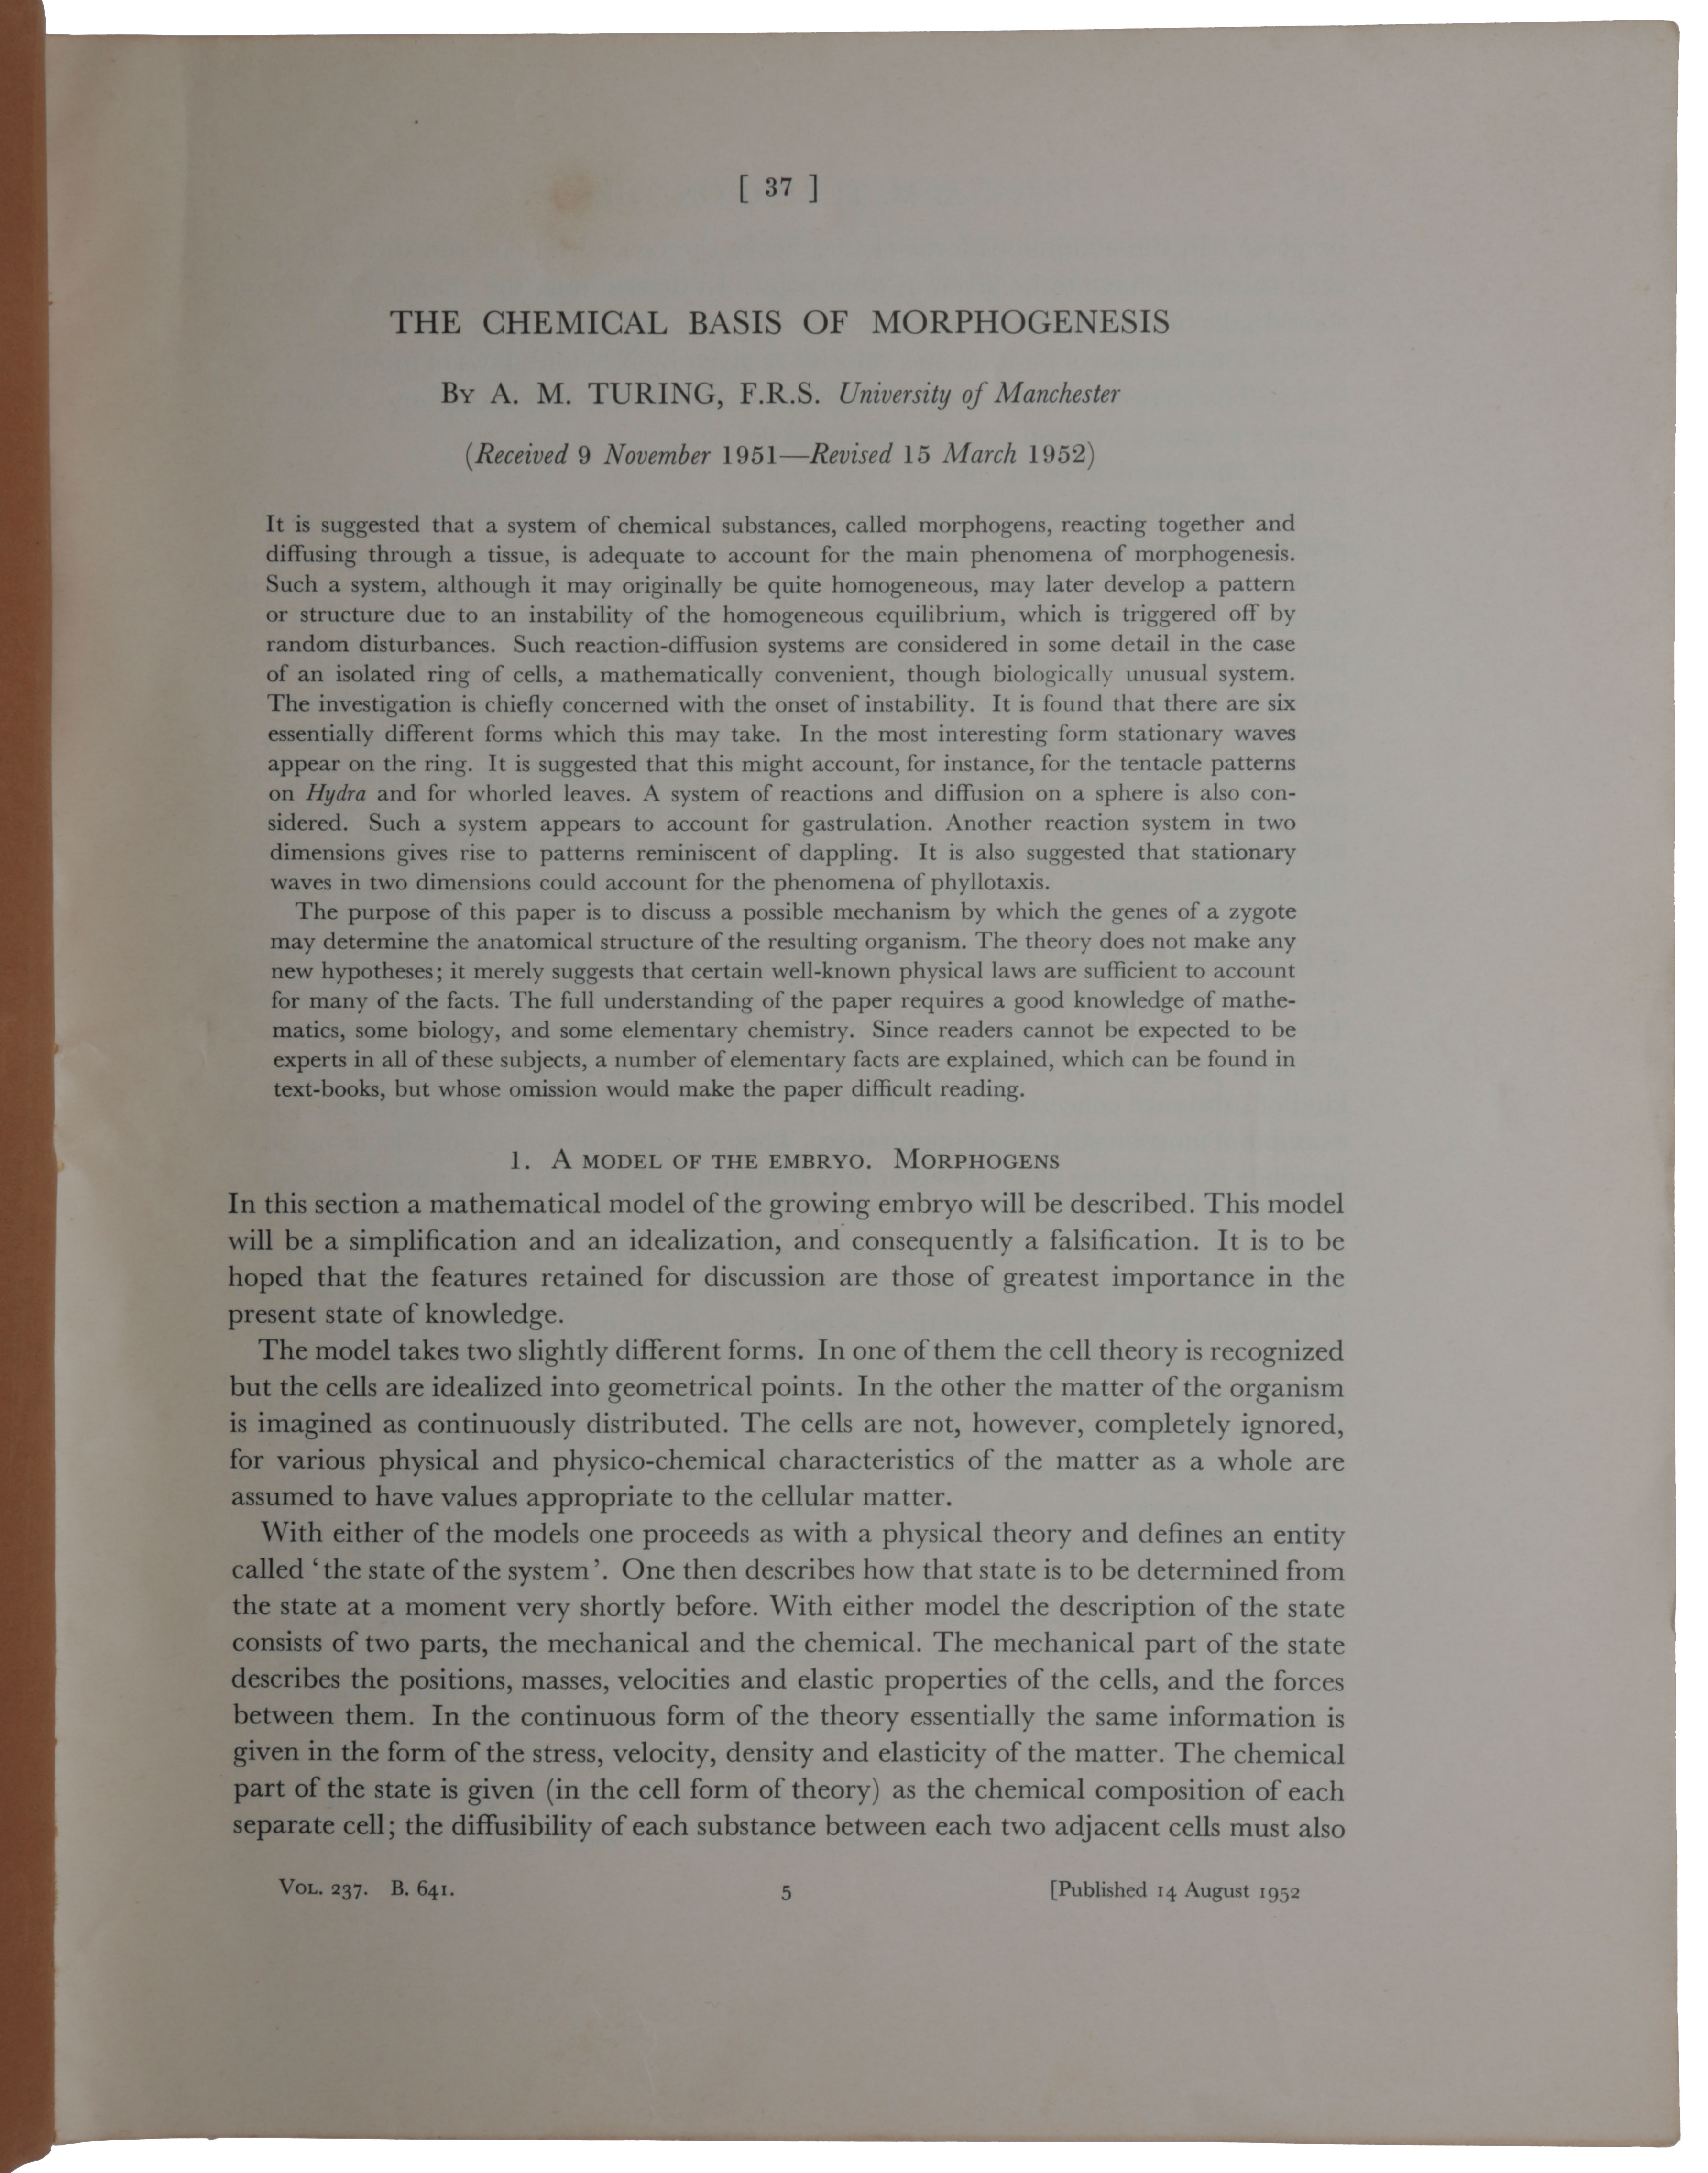 The chemical basis of morphogenesis. Offprint from: Philosophical Transactions of the Royal Society of London, Series B, Vol. 237, No. 641, 14 August, 1952. Alan Mathison TURING.